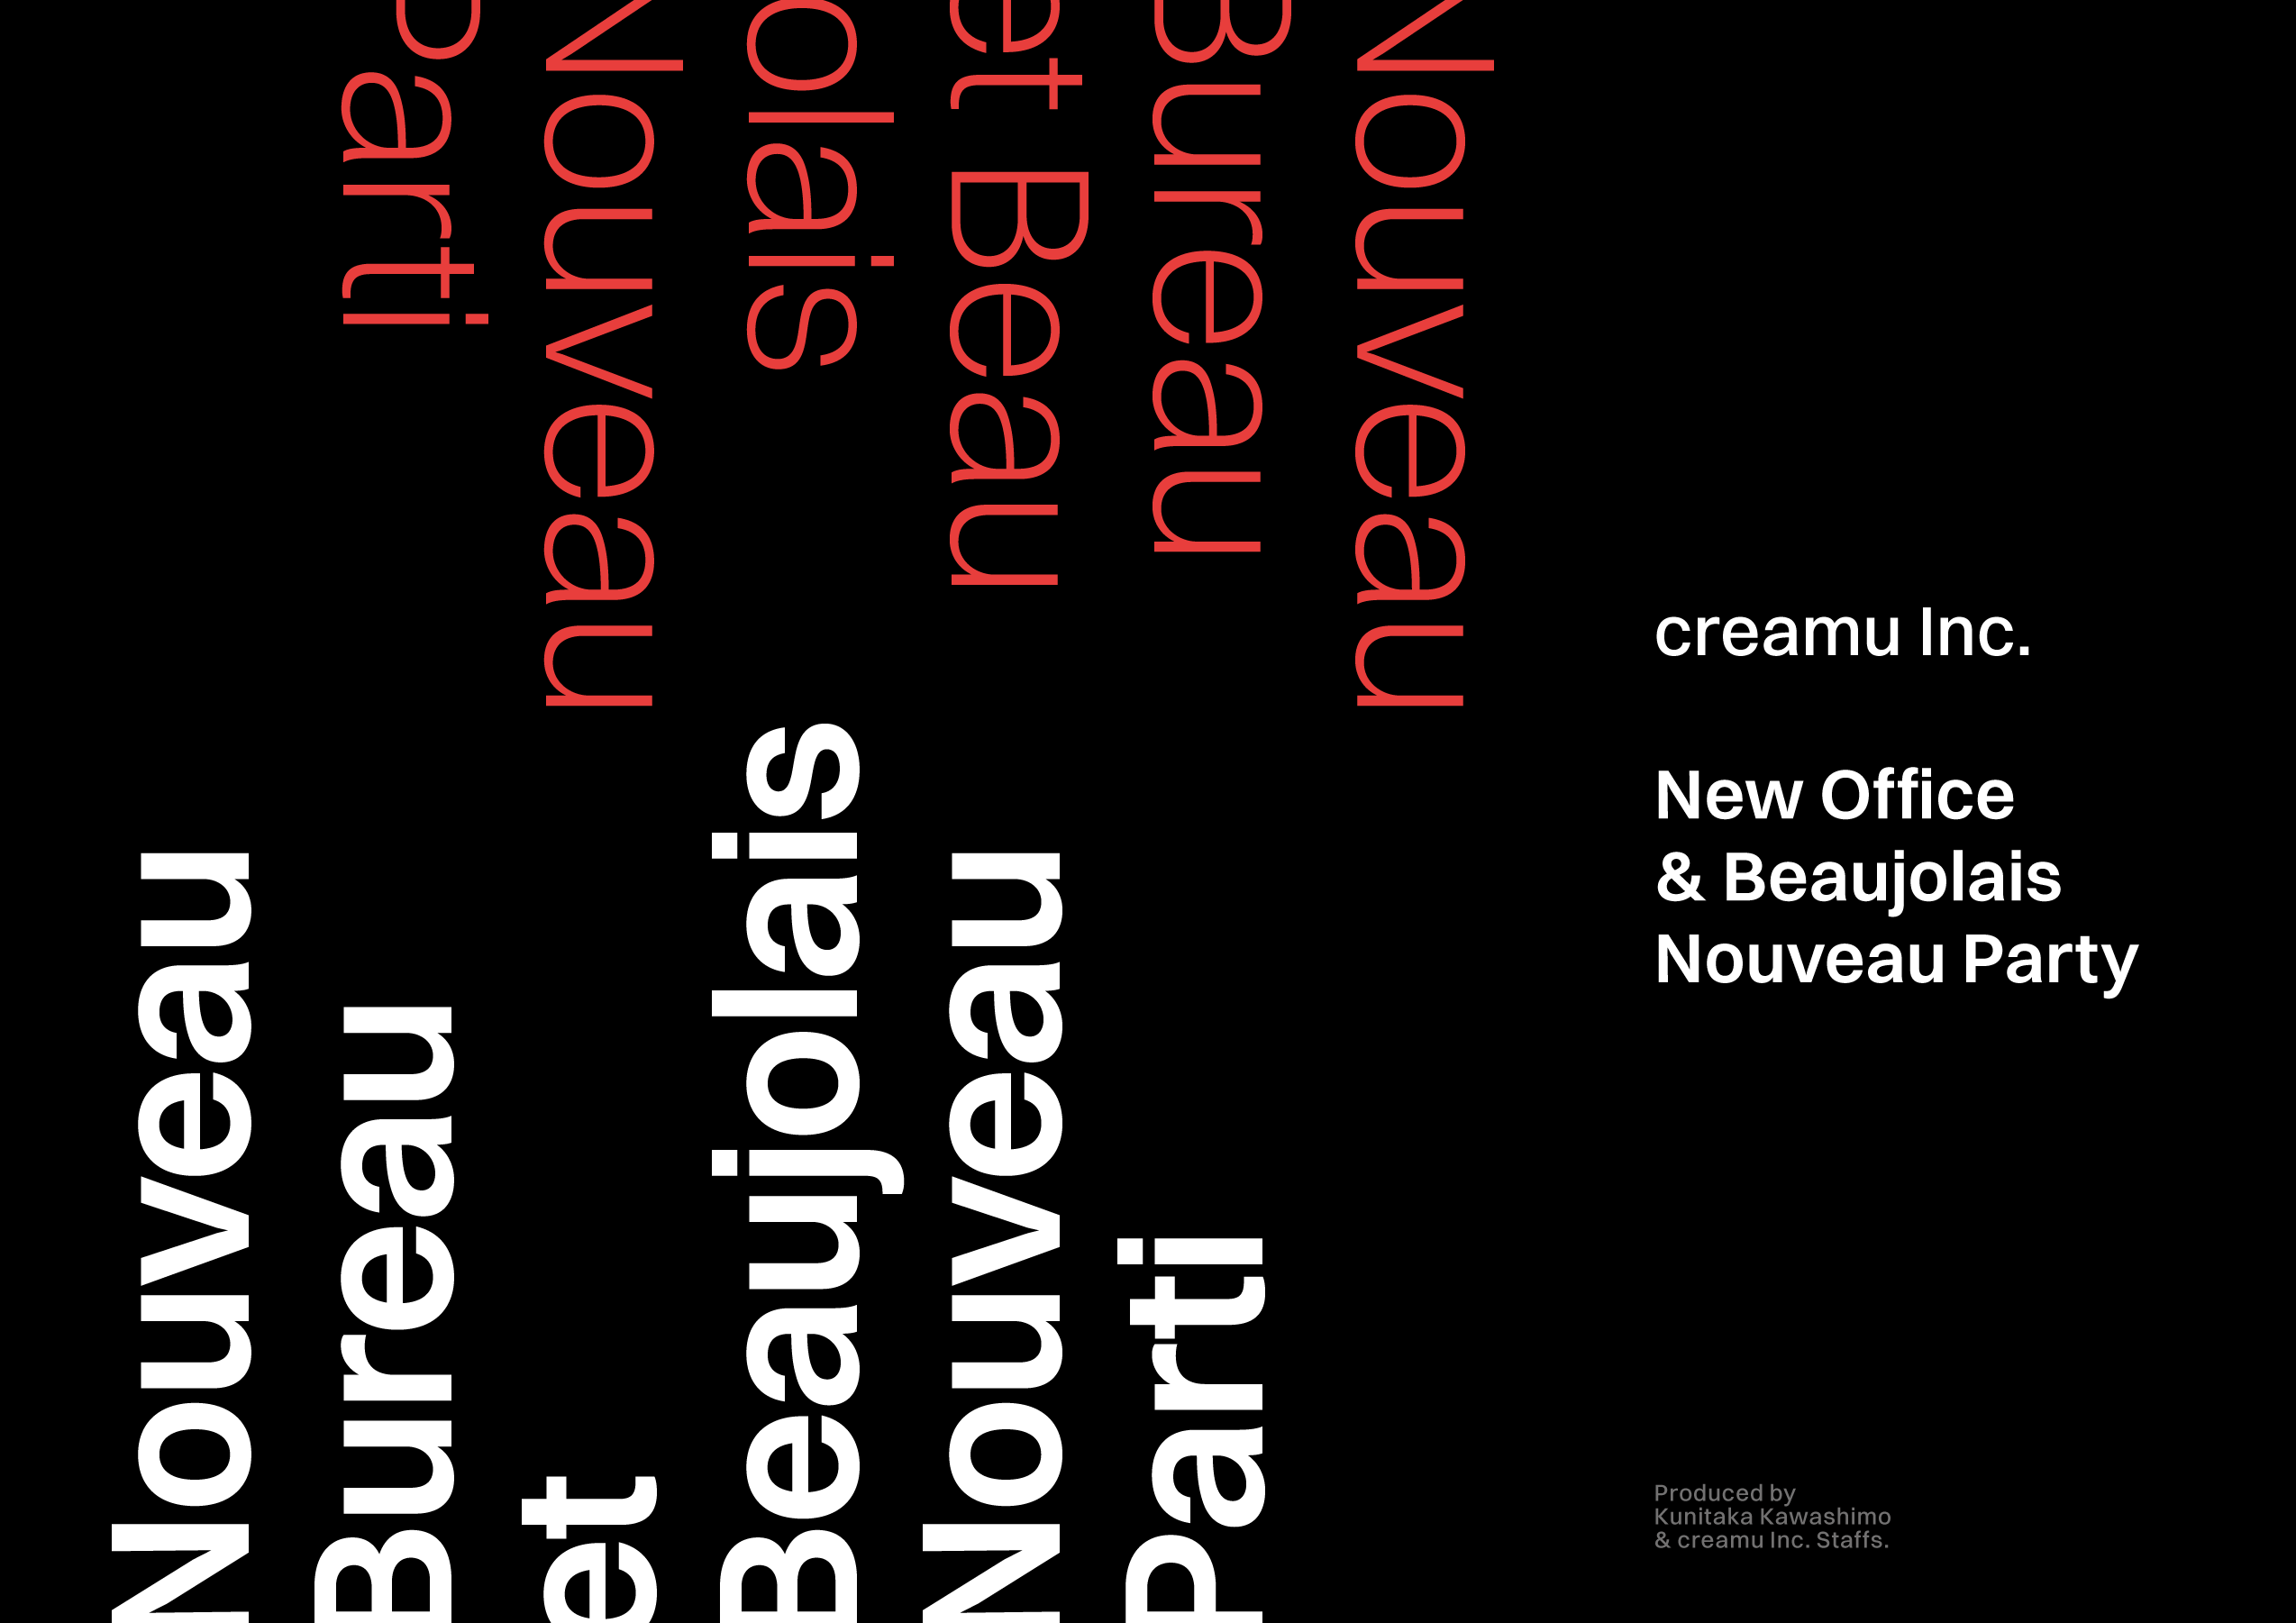 Graphic for New Office & Beaujolais Nouveau Party